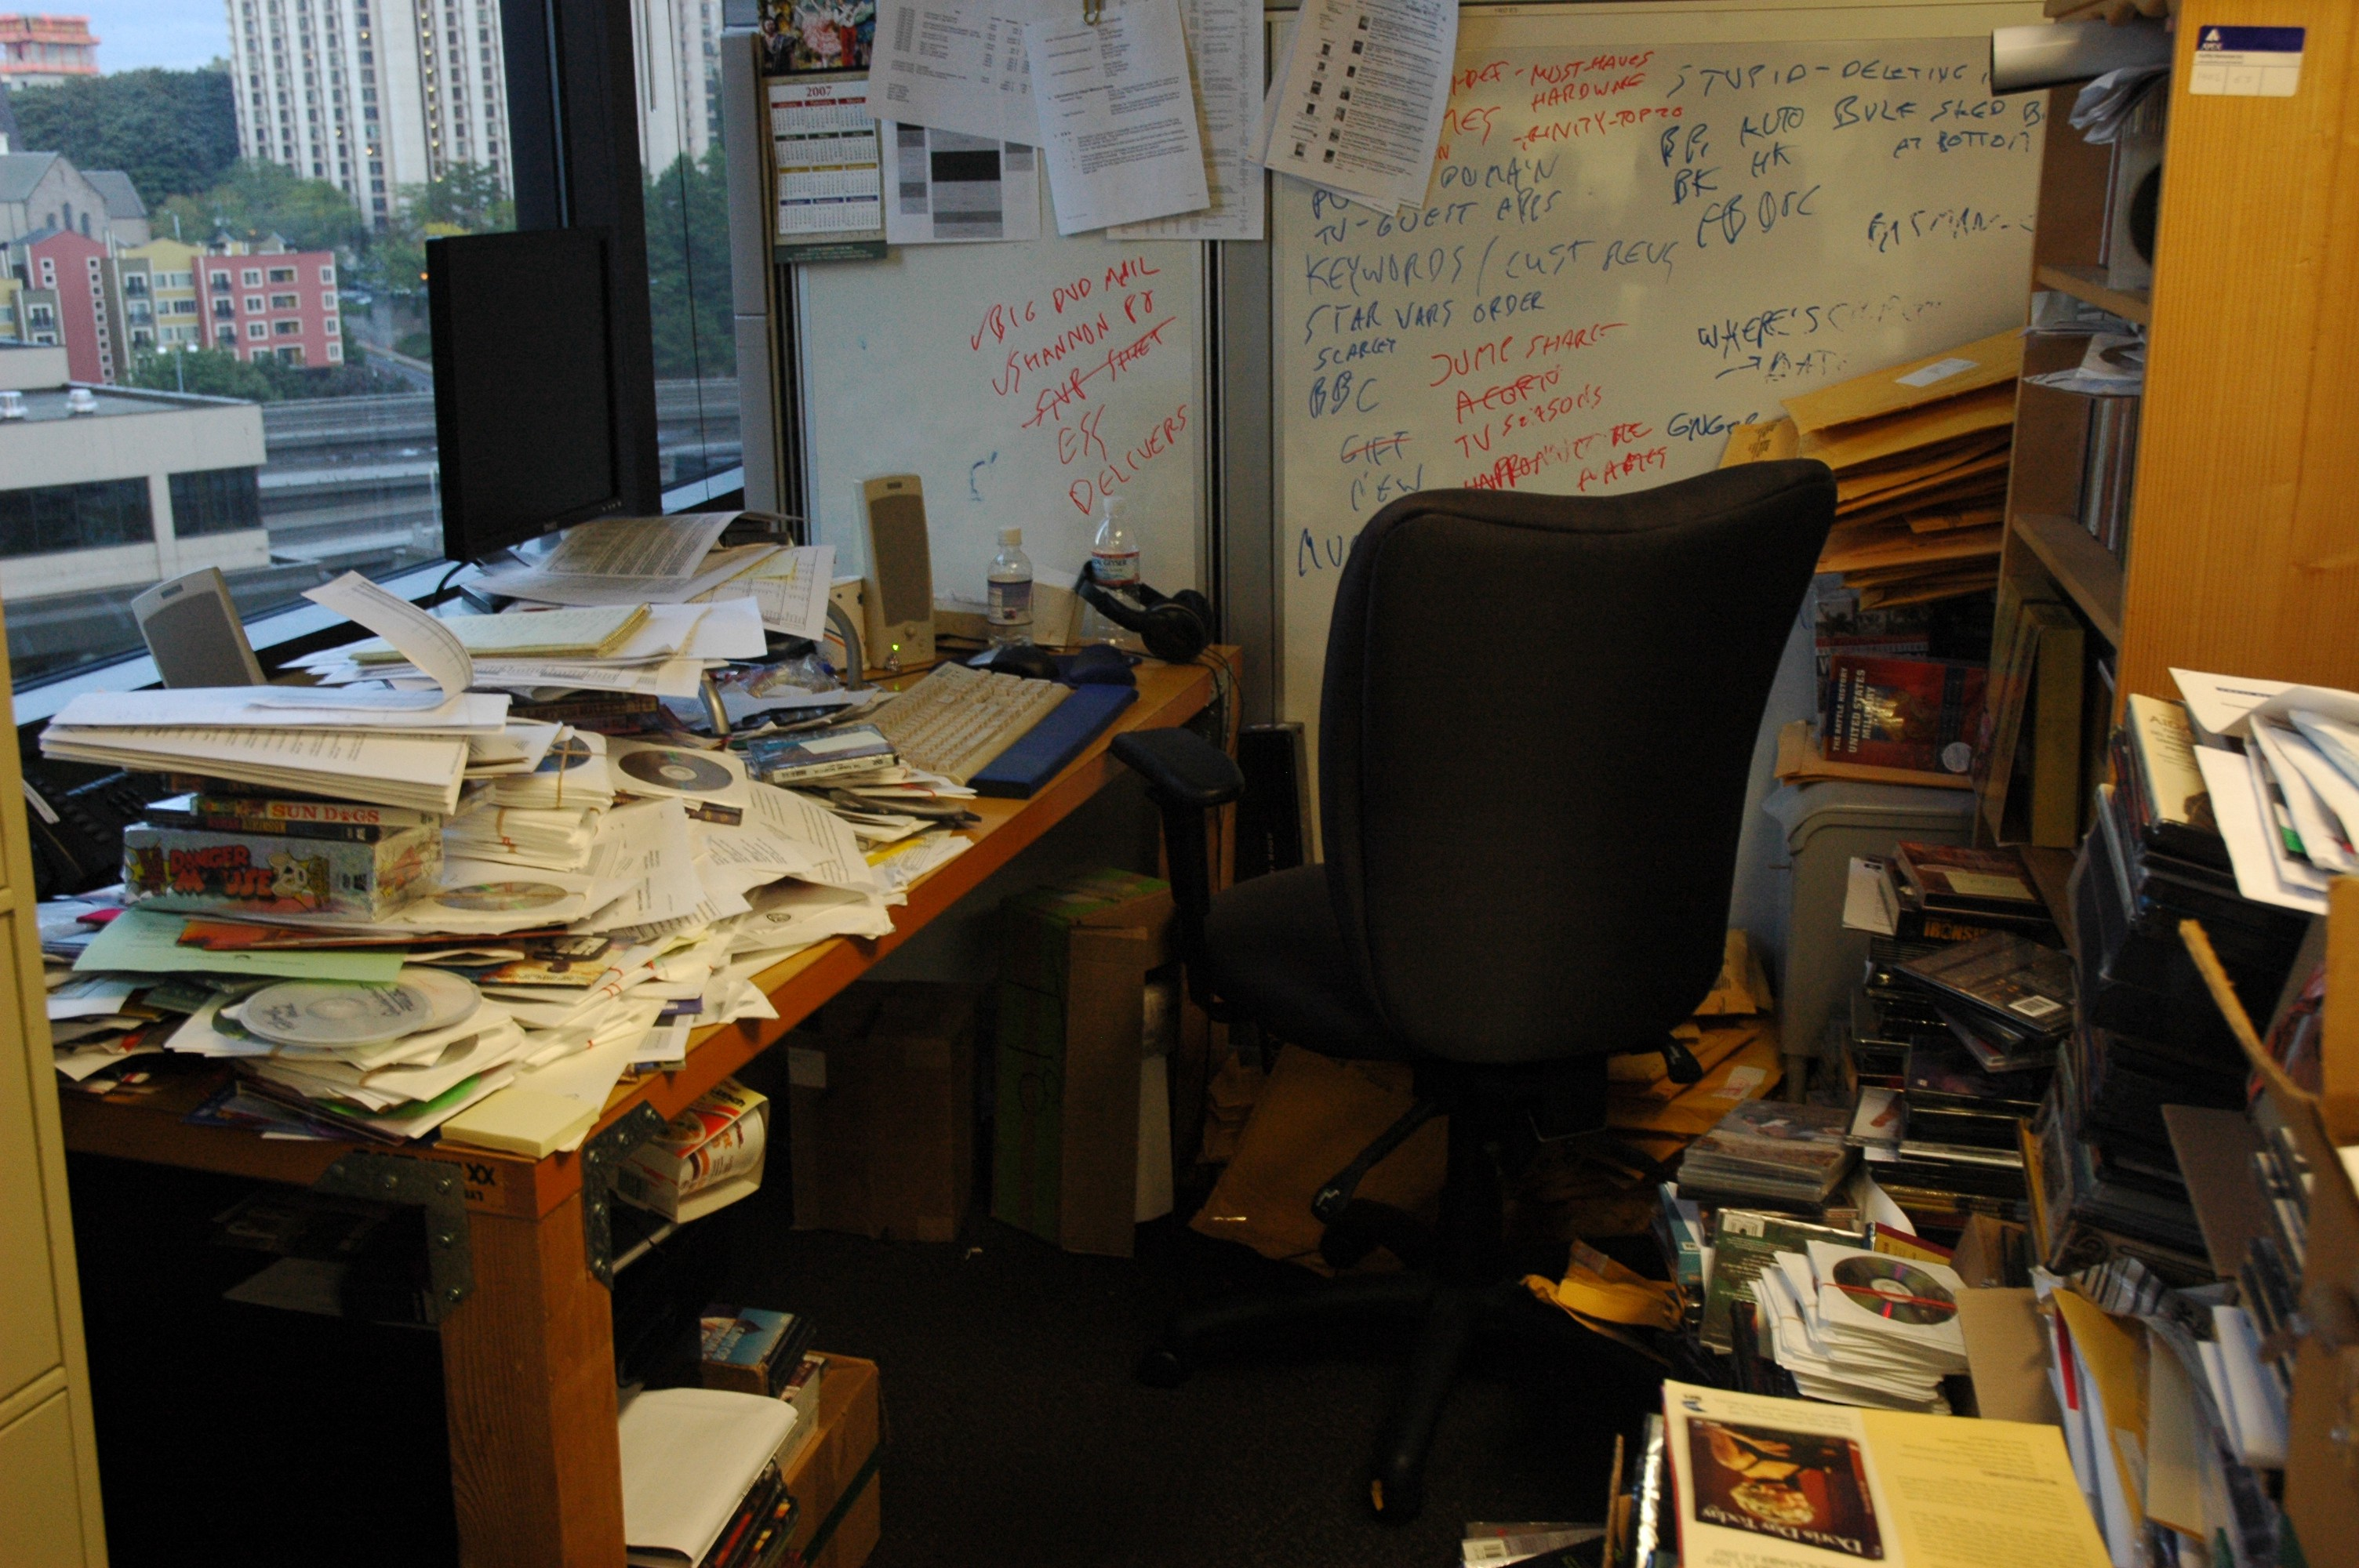 A messy desk with stacks of paper.